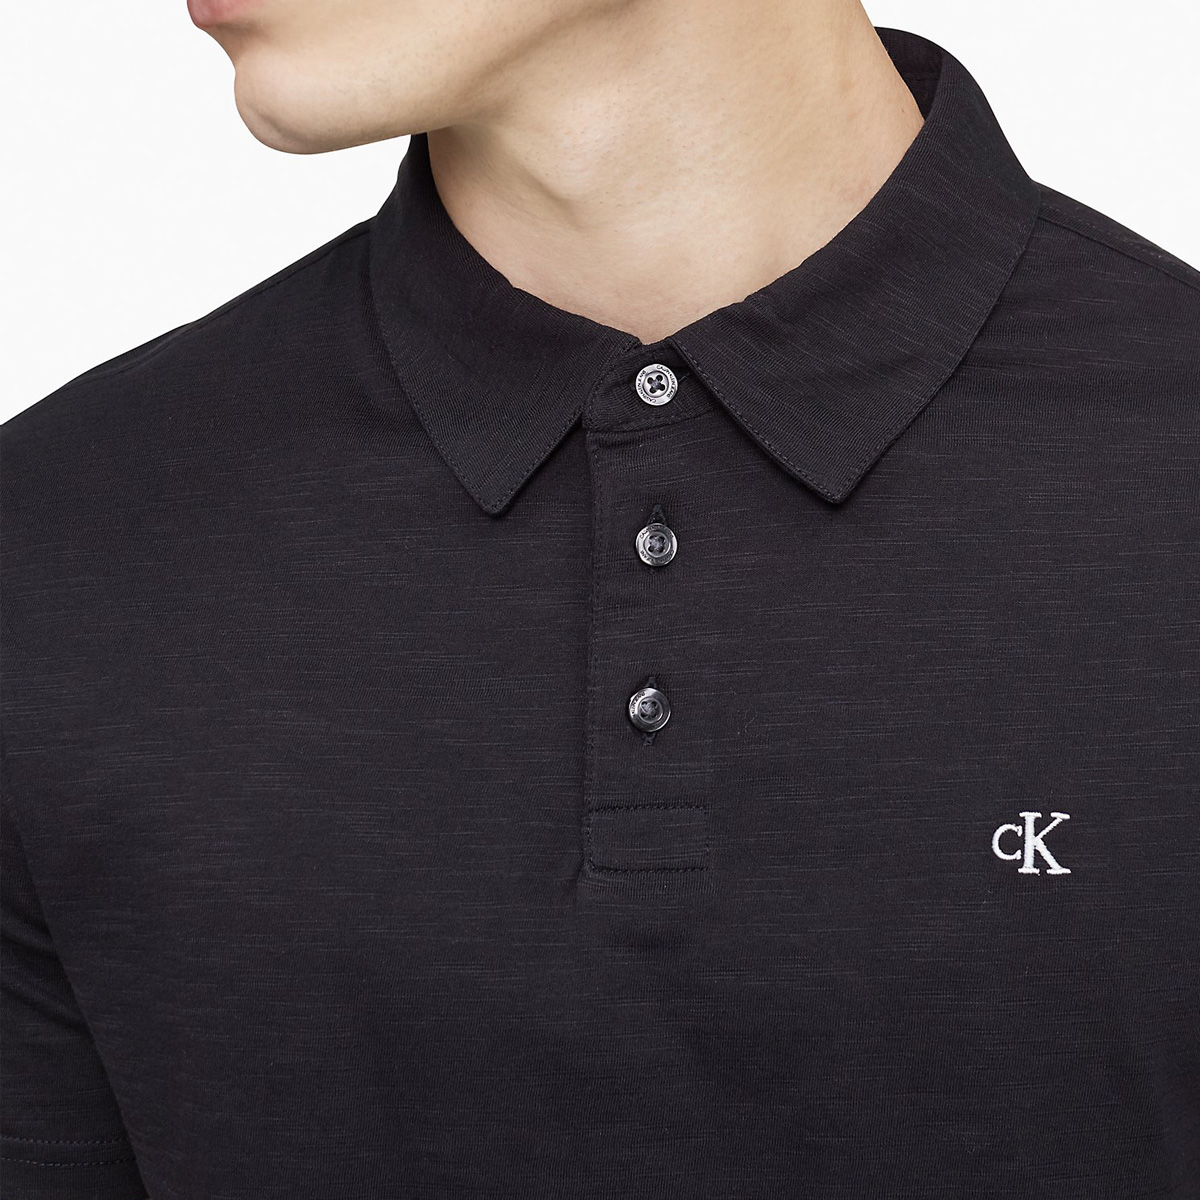 ao-polo-calvin-klein-regular-fit-274